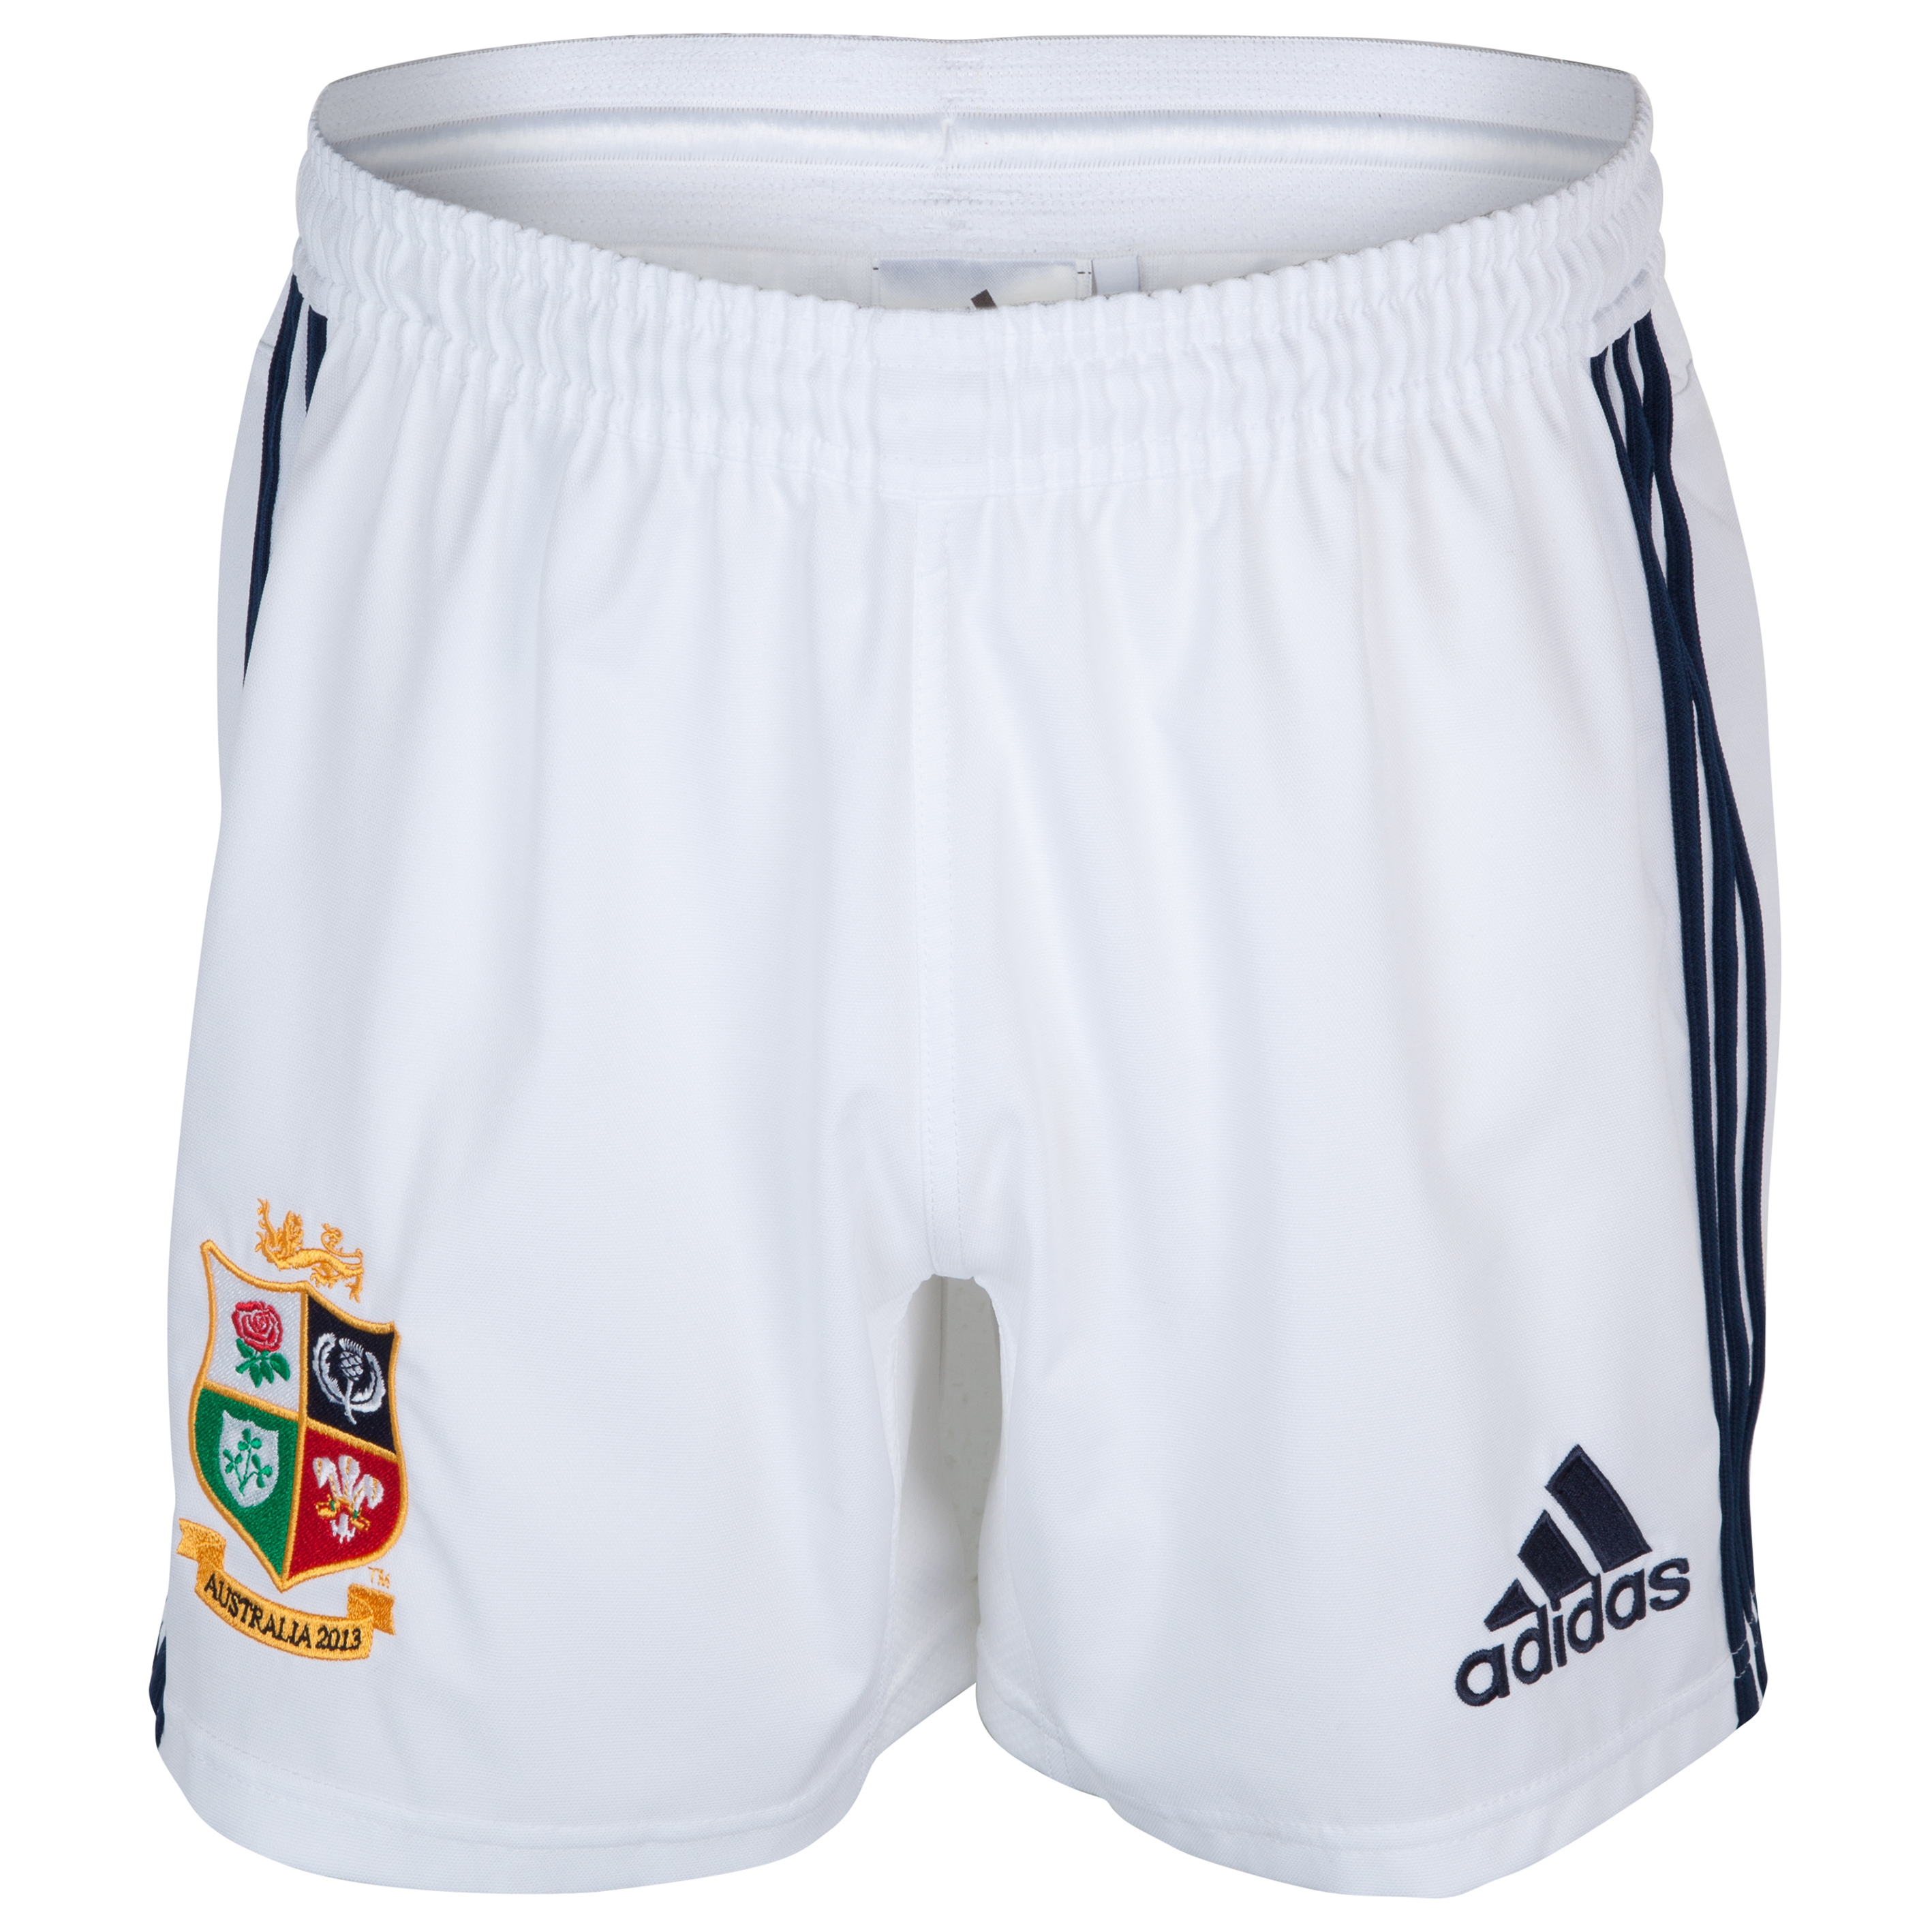 British & Irish Lions Home Shorts 2013